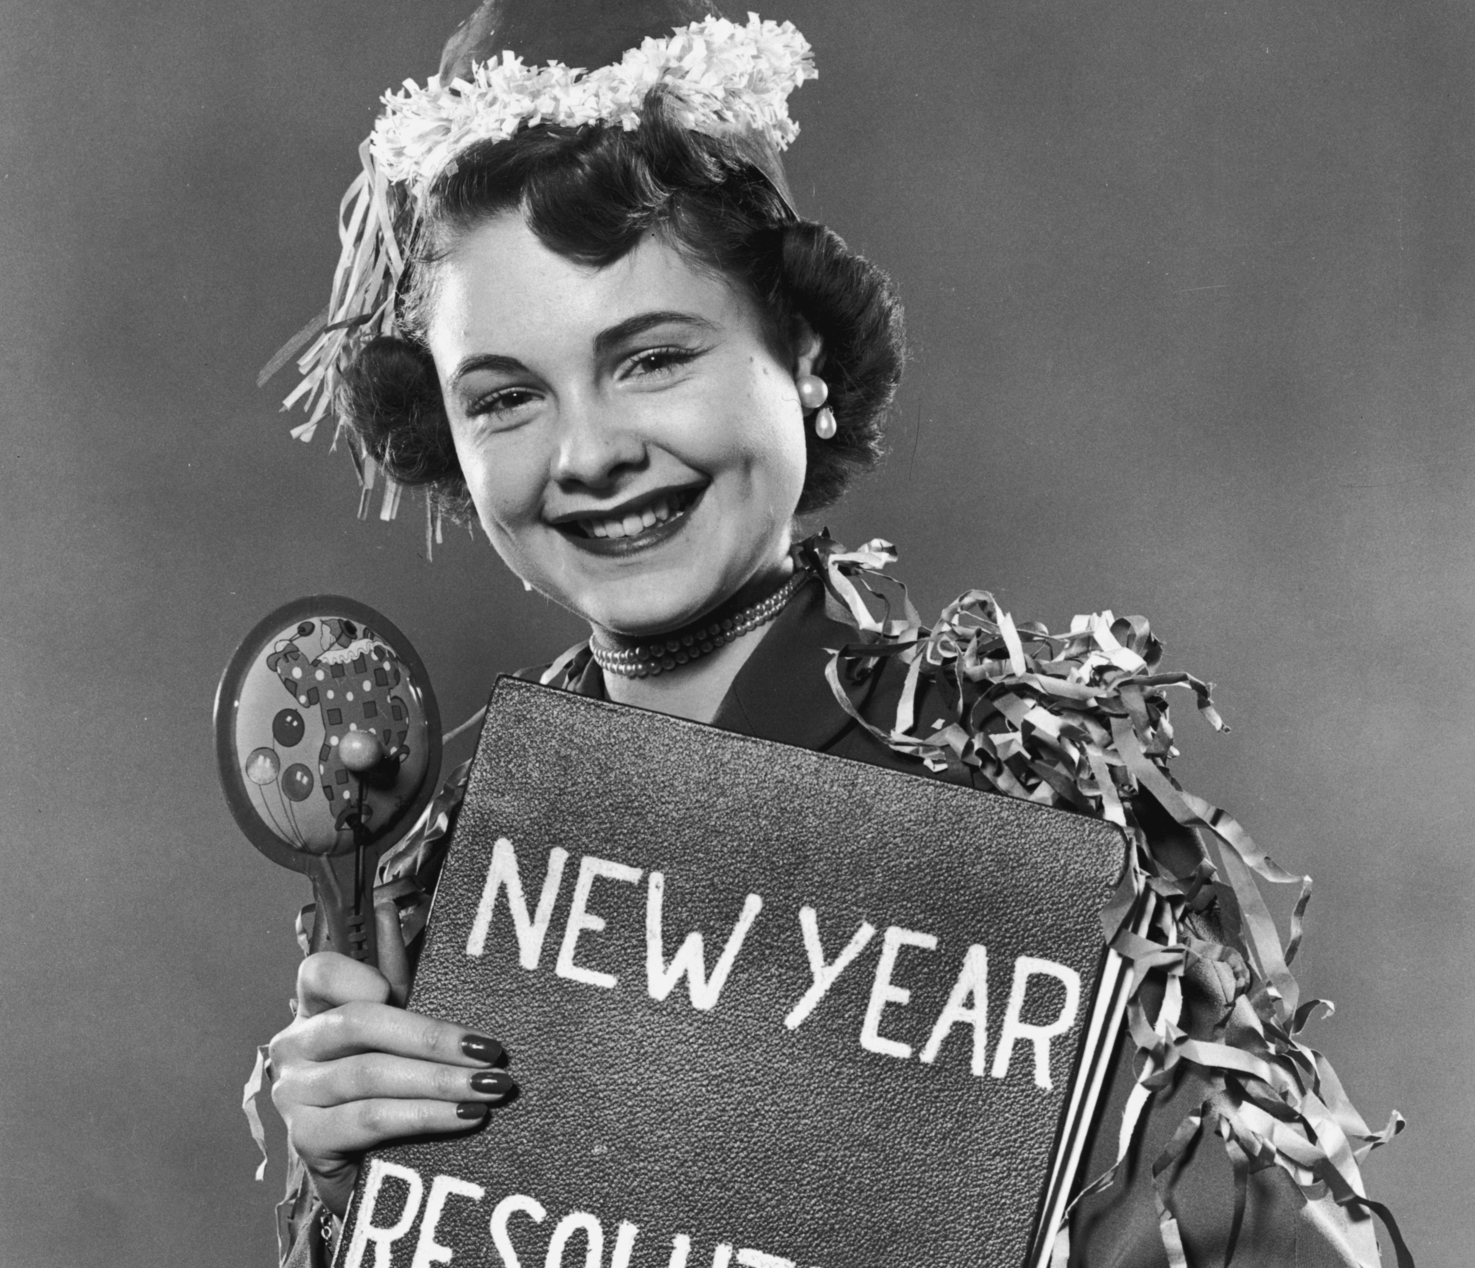 Where did New Year's resolutions even come from?